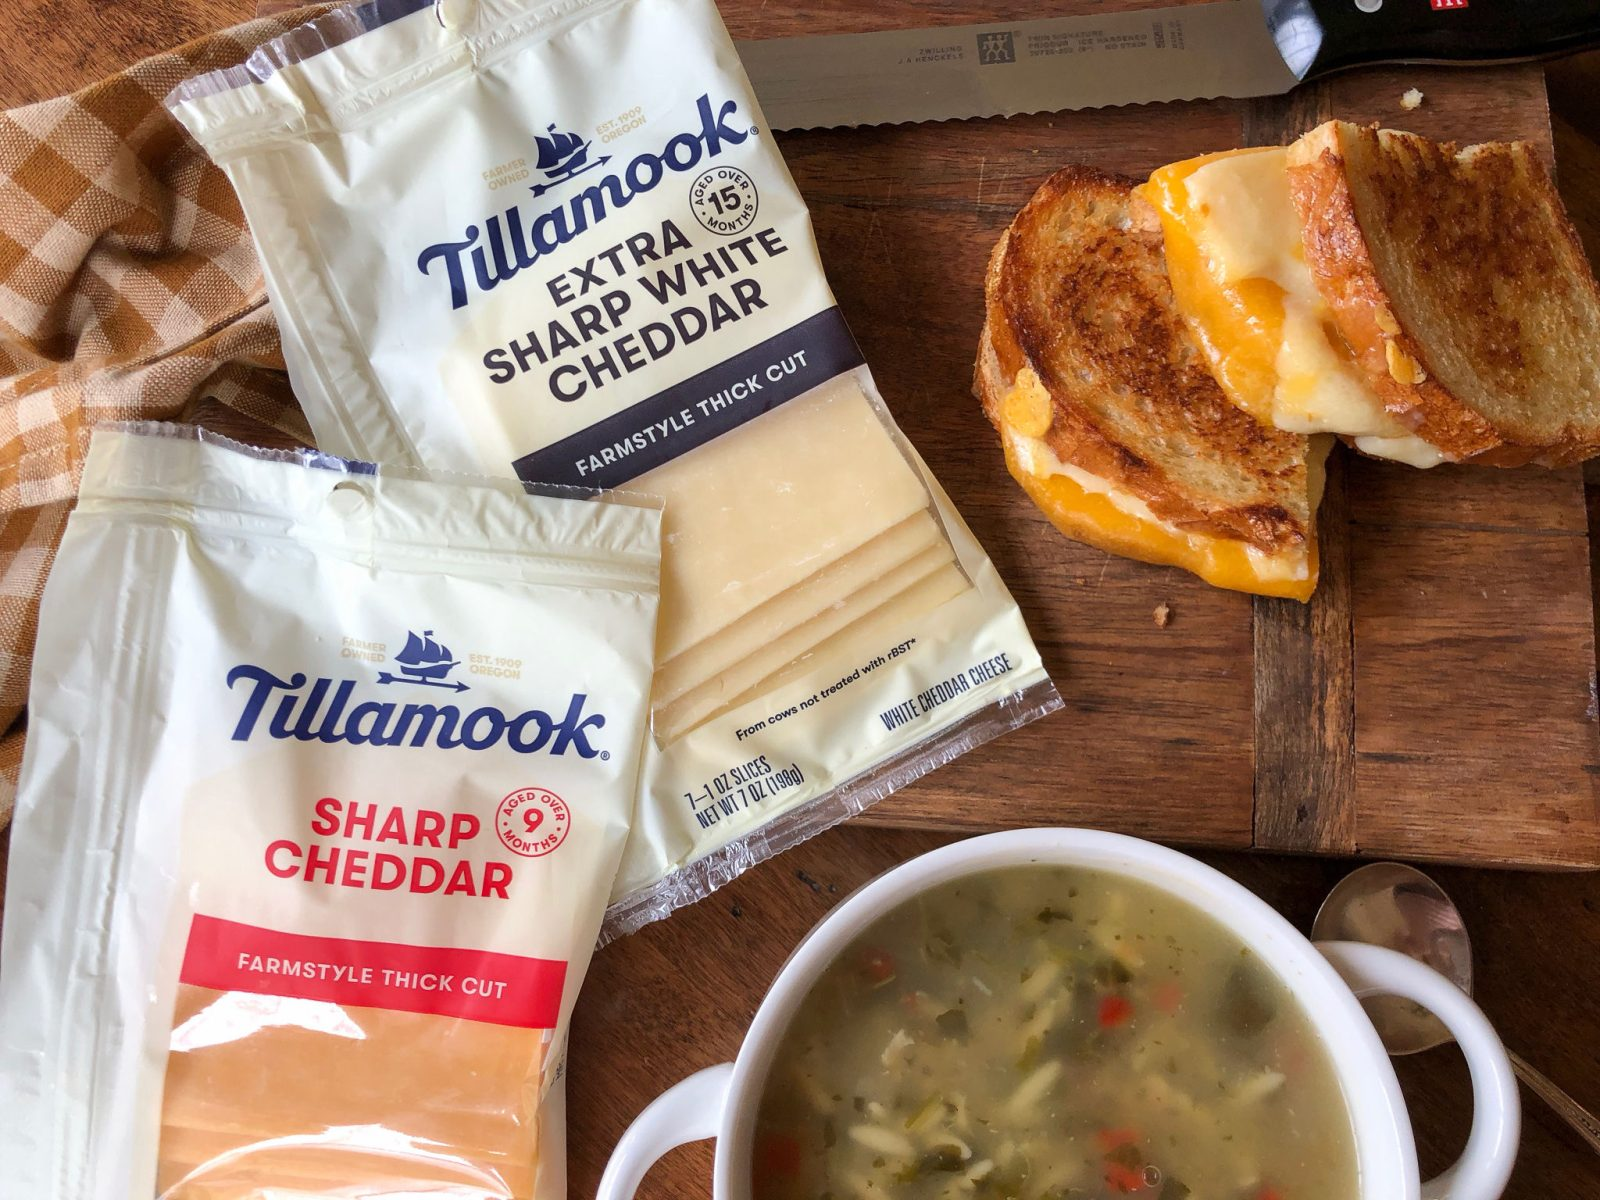 Don't Miss Your Chance To Get Savings On Delicious Tillamook Products At Publix on I Heart Publix